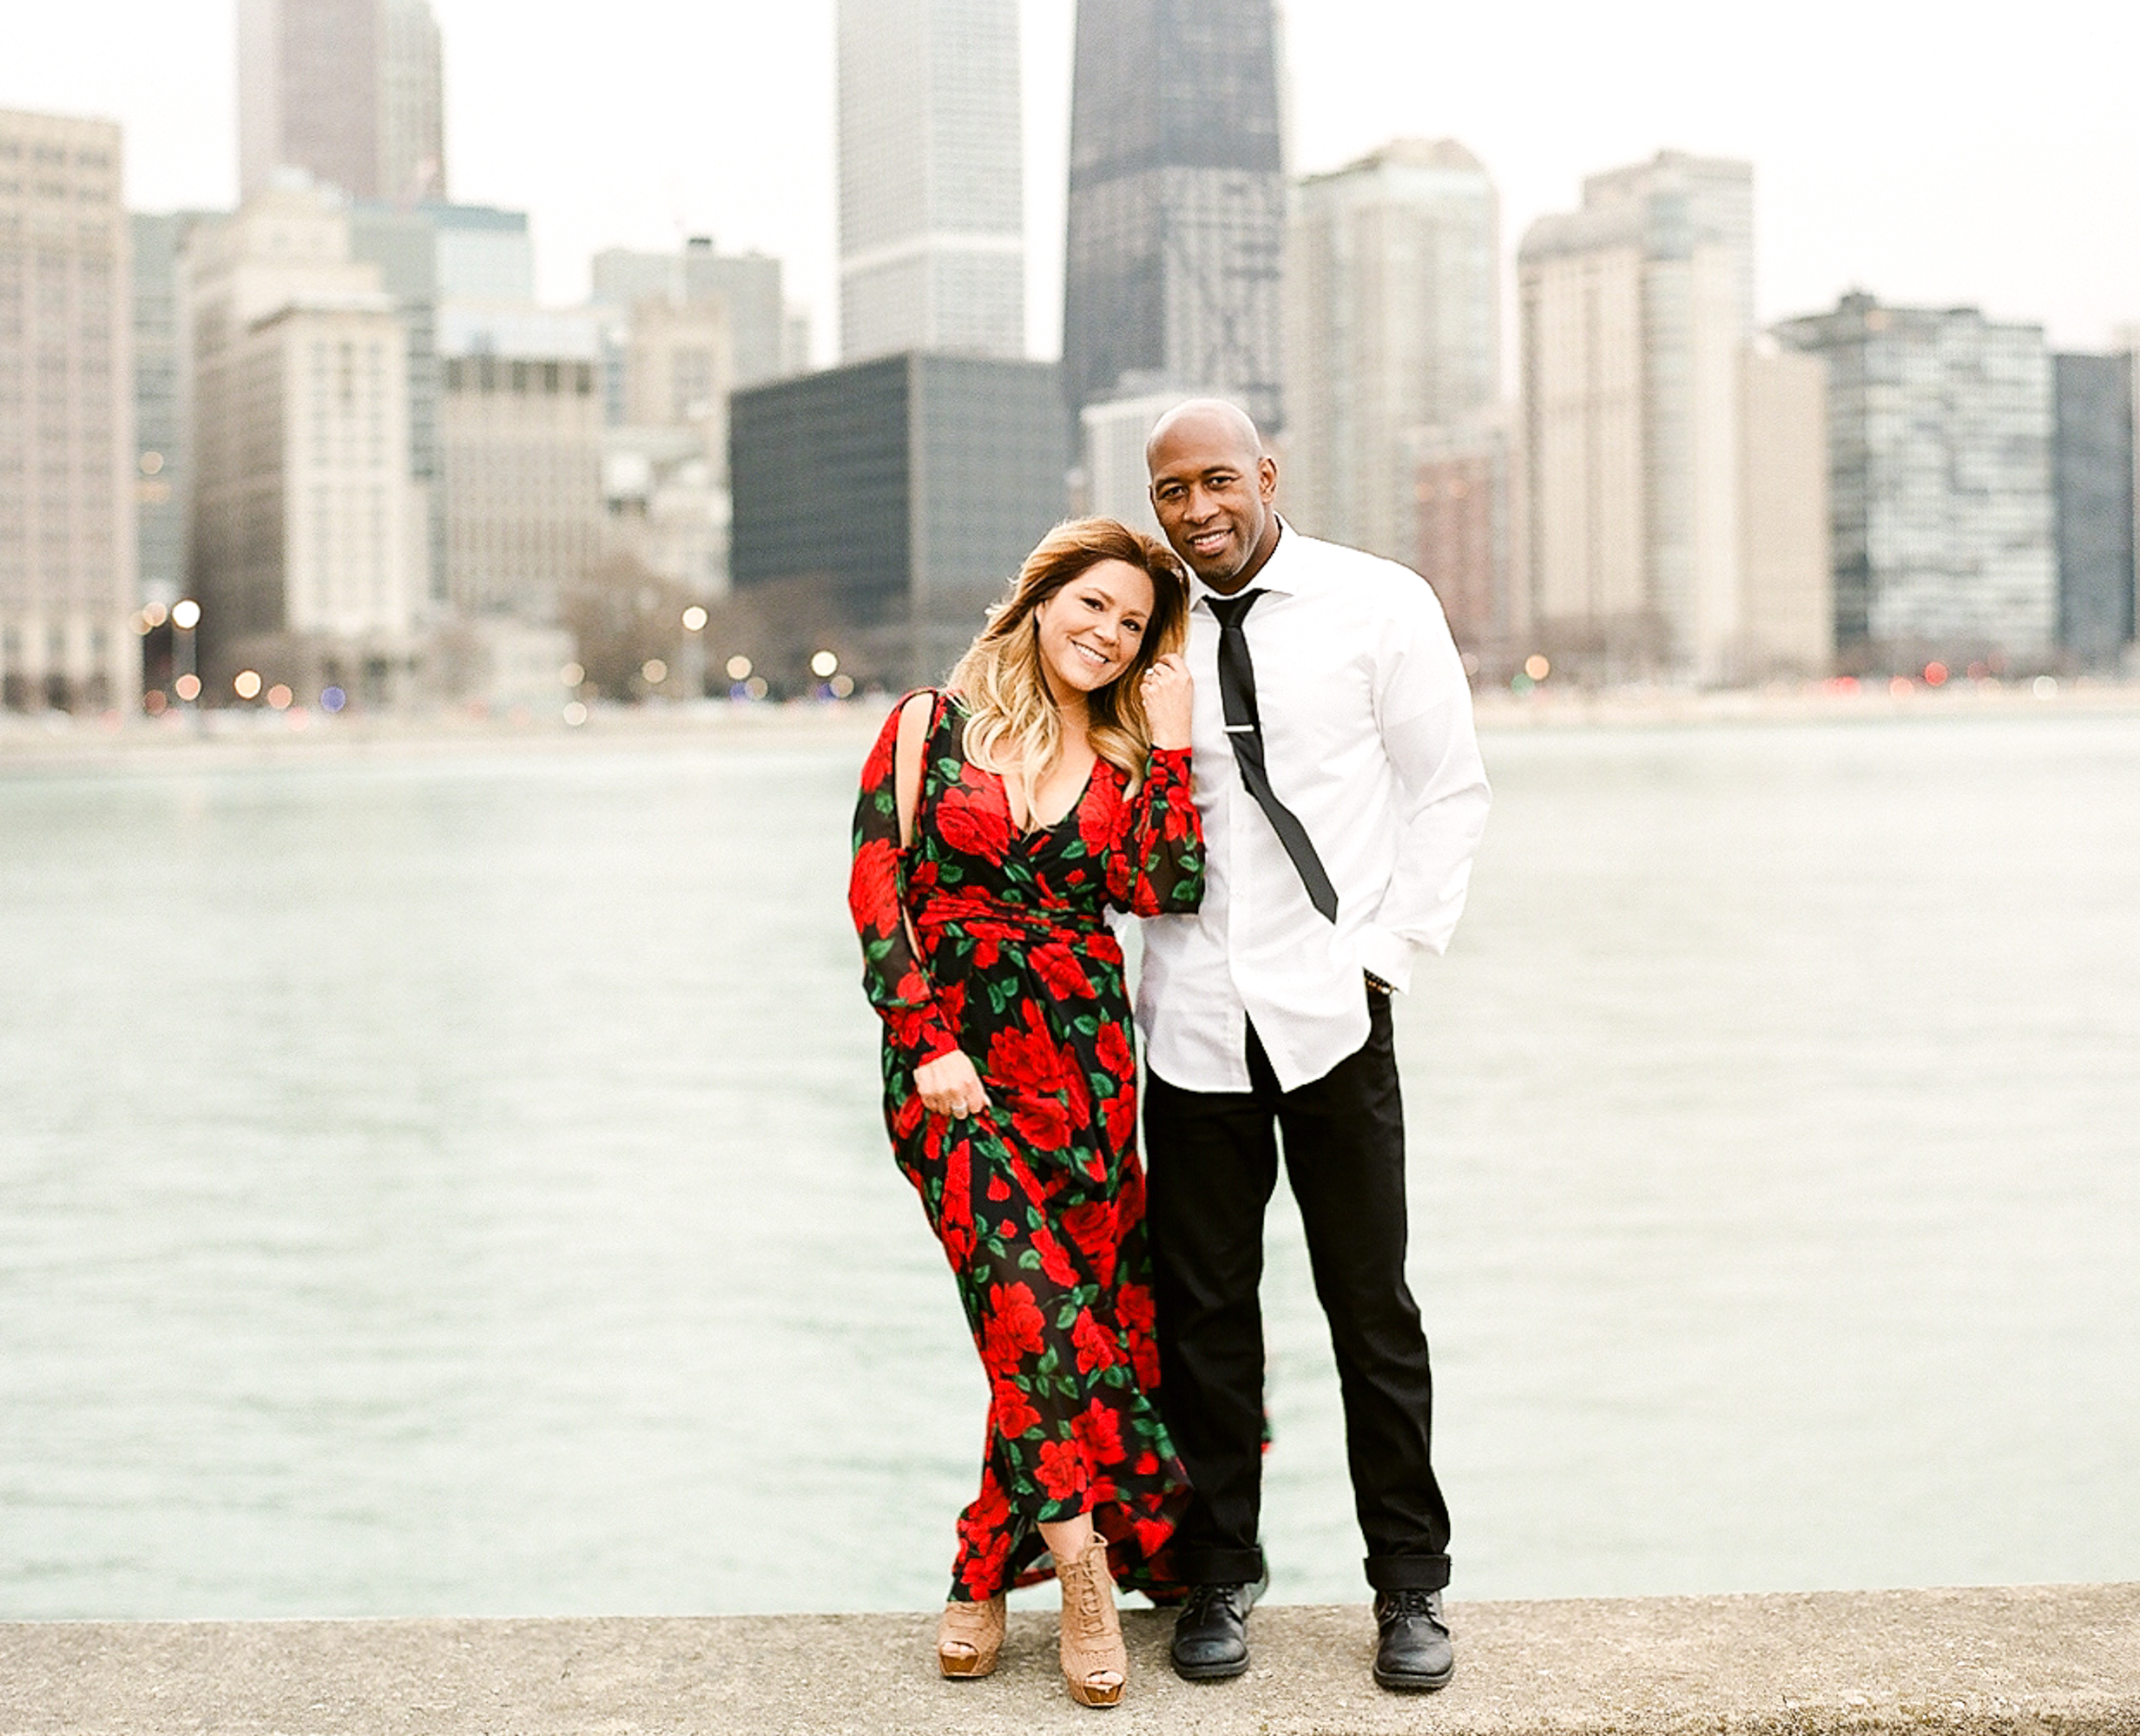 Bonphotage Chicago Film Engagement Photography